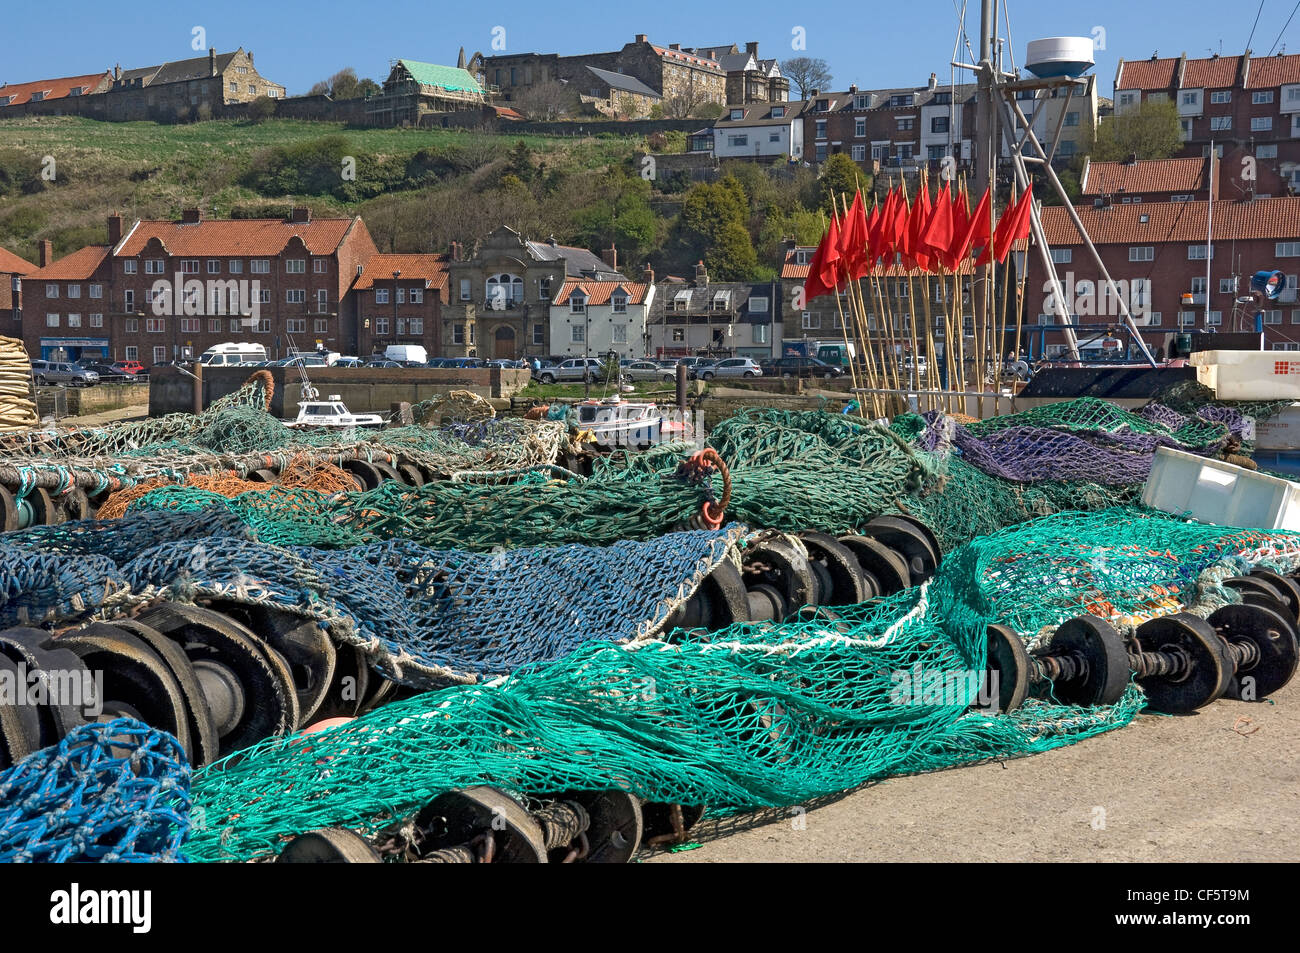 Trawling nets laid out on the Whitby quayside. - Stock Image